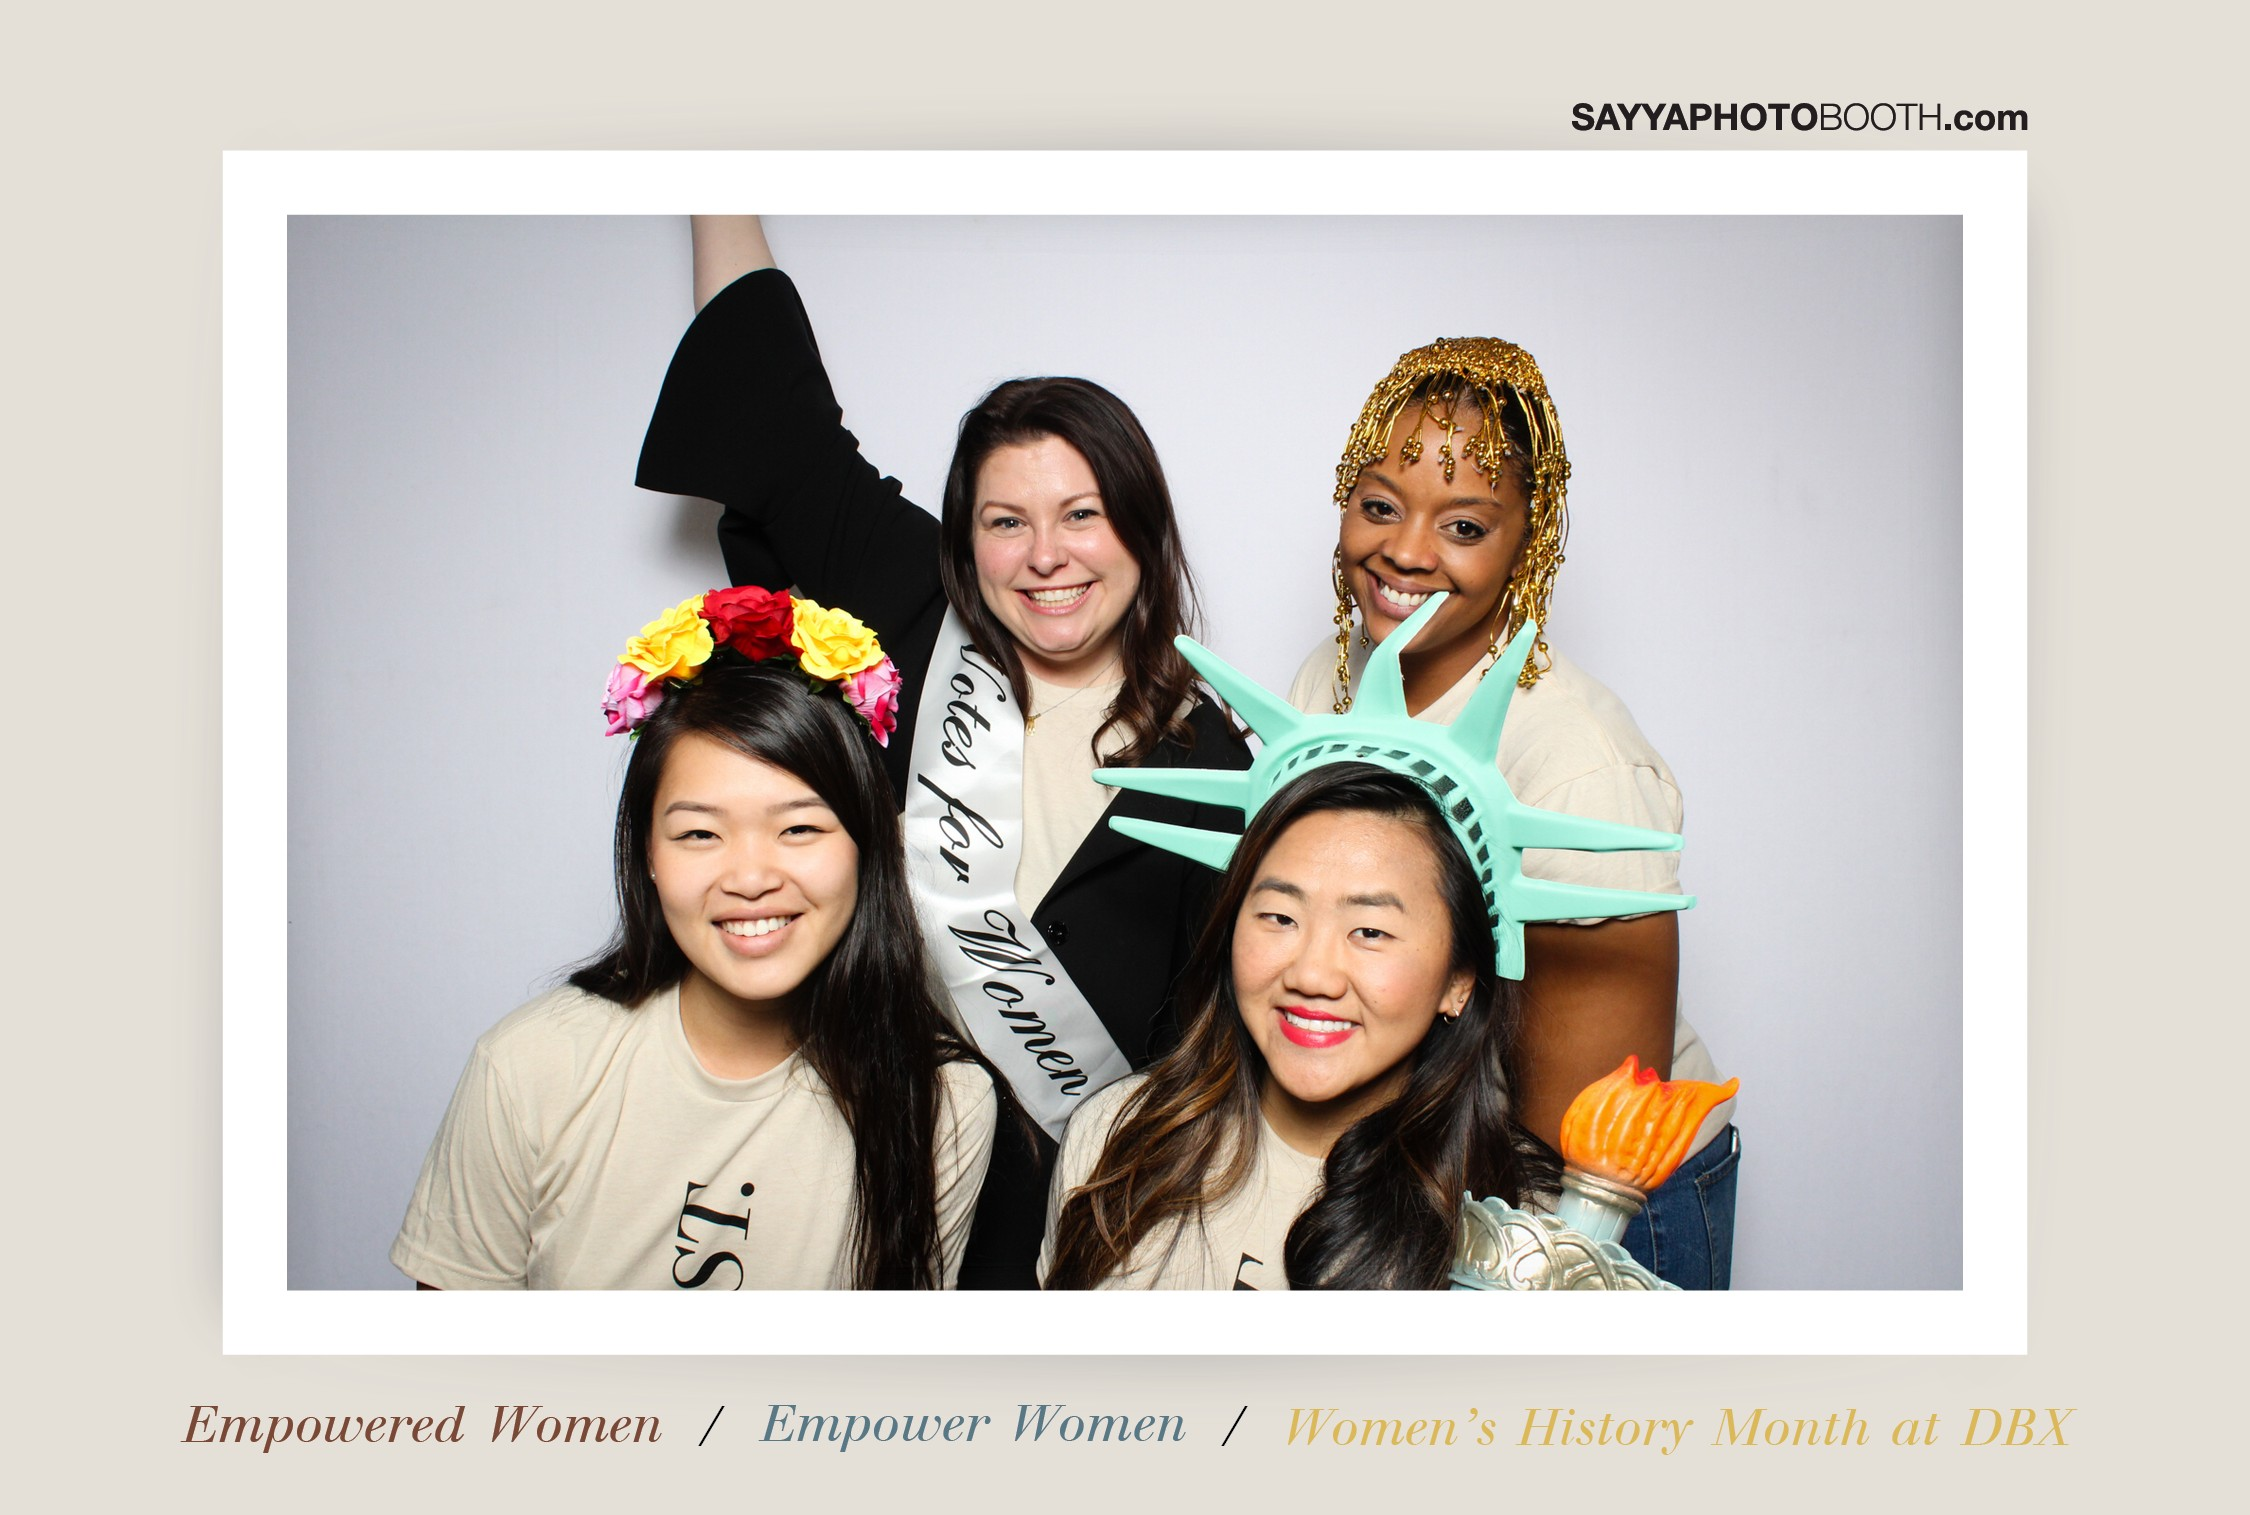 Dropbox Women's History Month